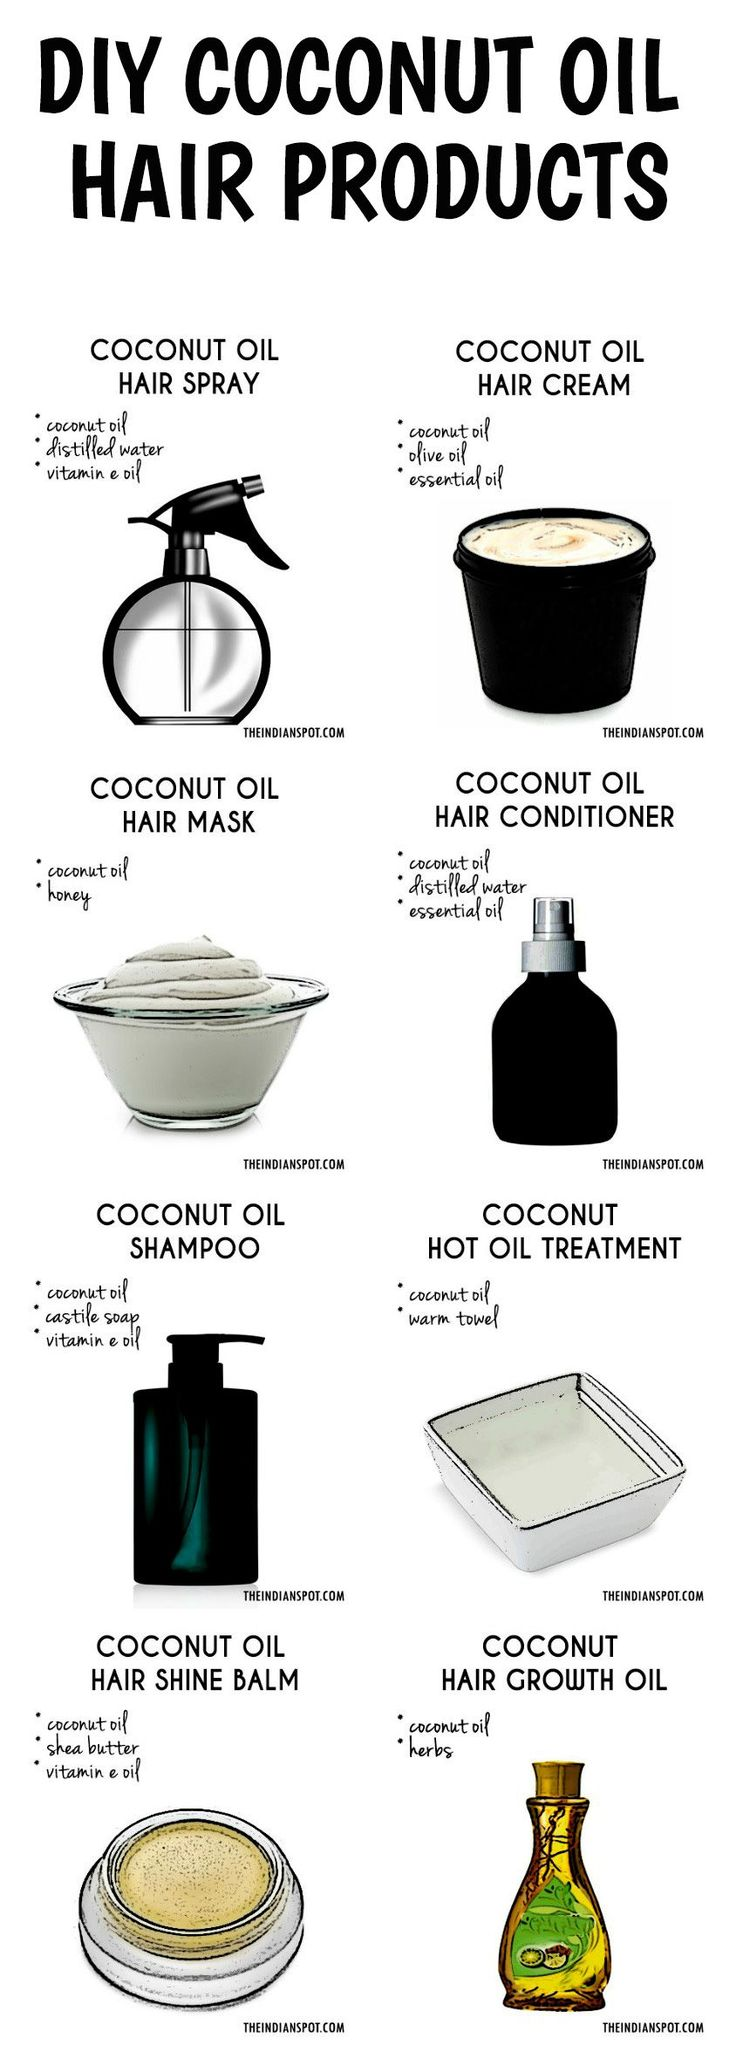 coconut oil: learn the good bad and the ugly: http://curlsunderstood.com/coconut-oil-natural-hair-regimen #haircaregrowth